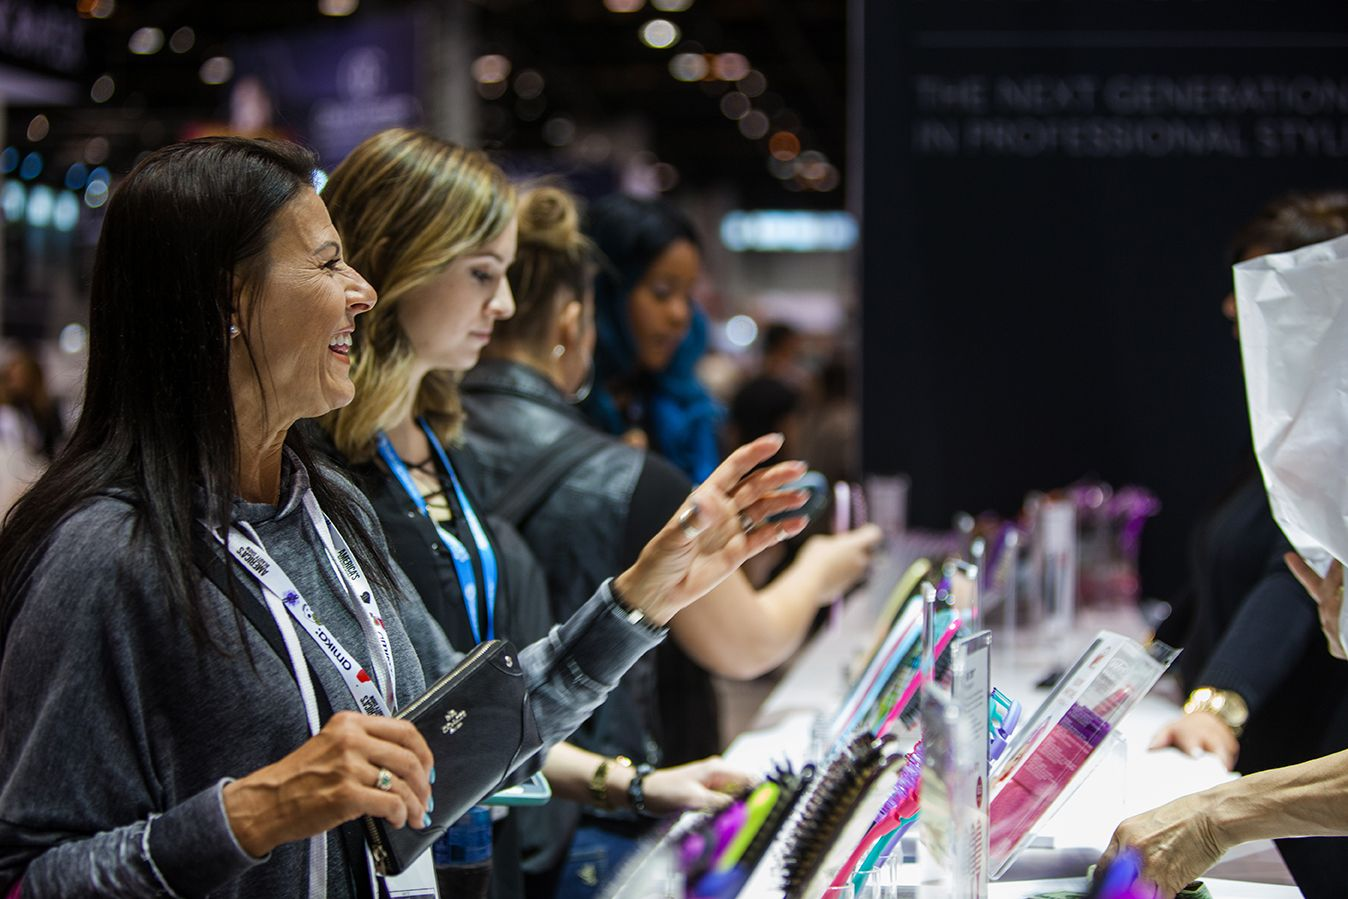 Attendees shopping at Wet Brush ABS 2018! Abs, Wet